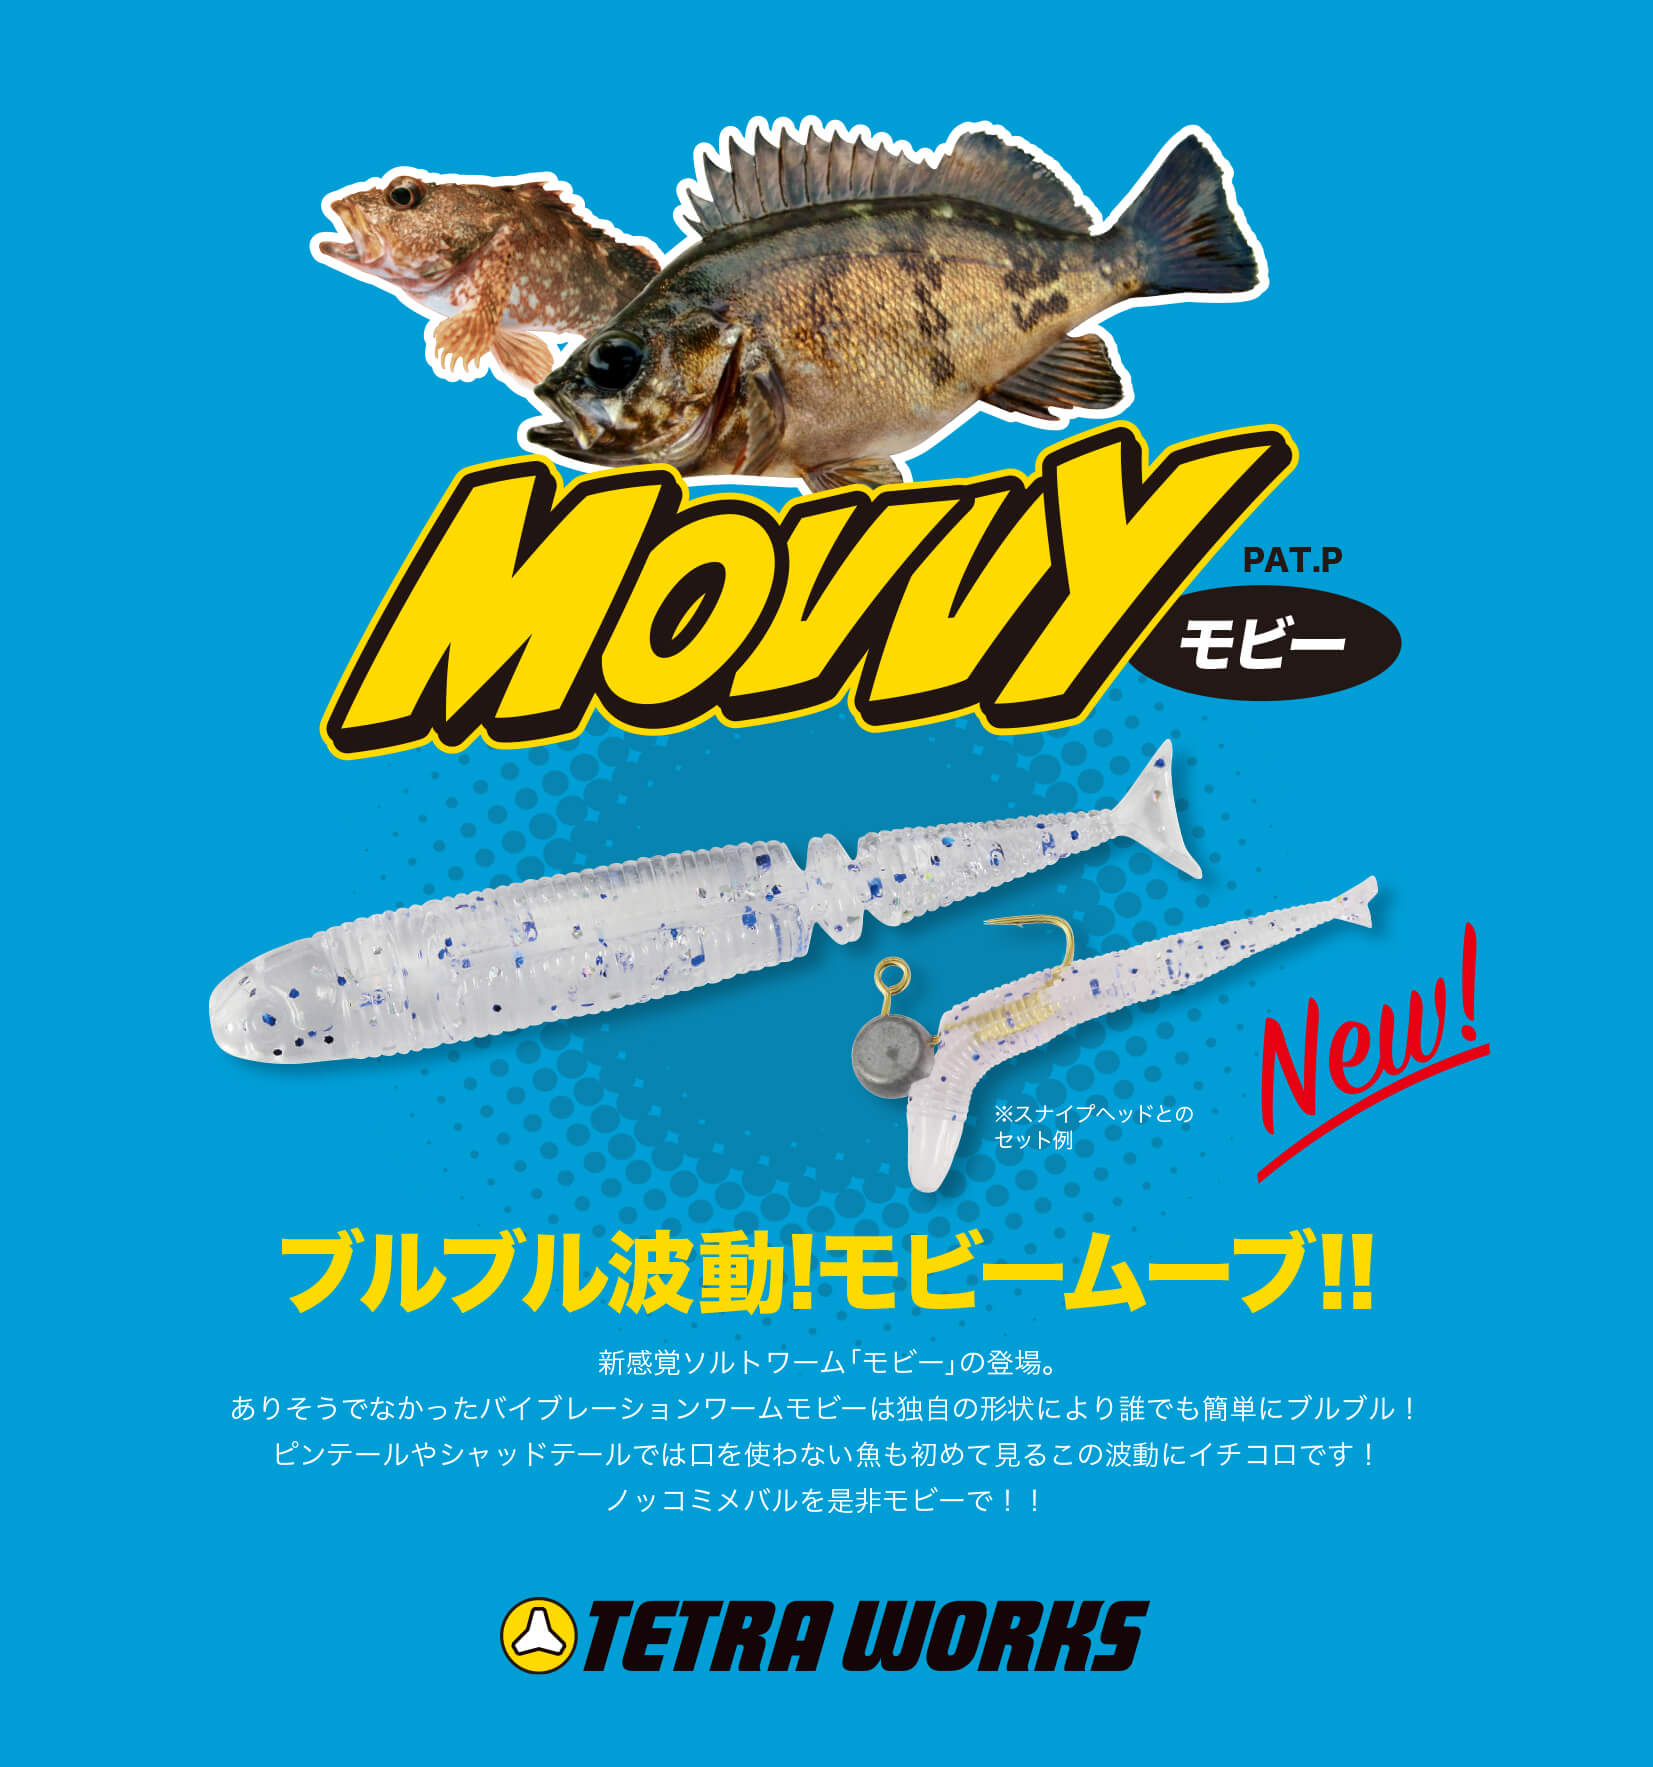 TETRAWORKS MOVVY「モビー」